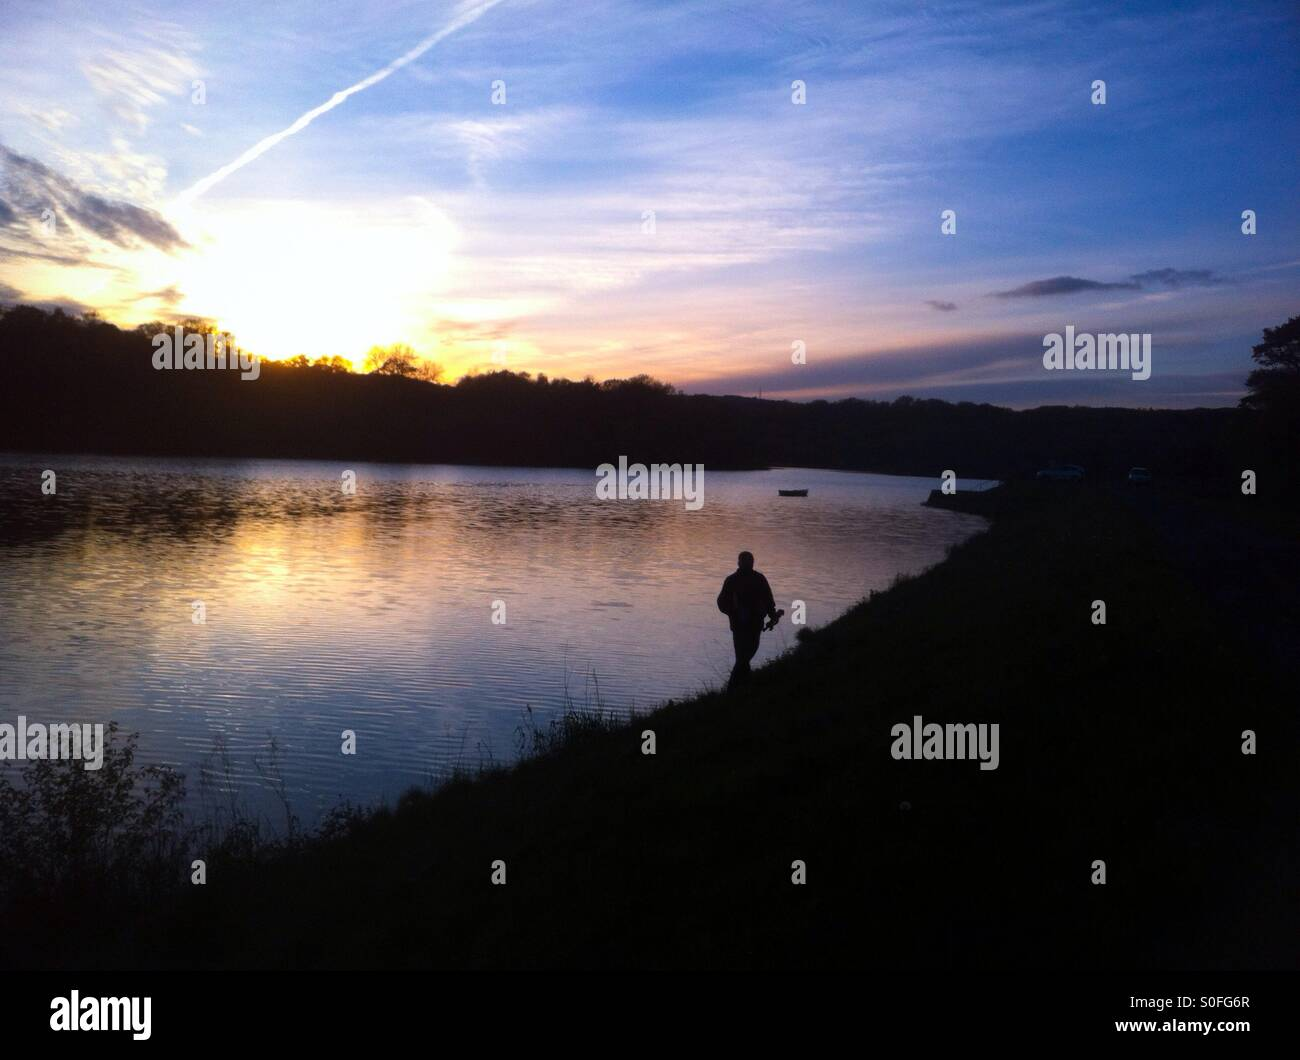 Man walking along the edge of a reservoir at sunset, Llanelli, Wales - Stock Image